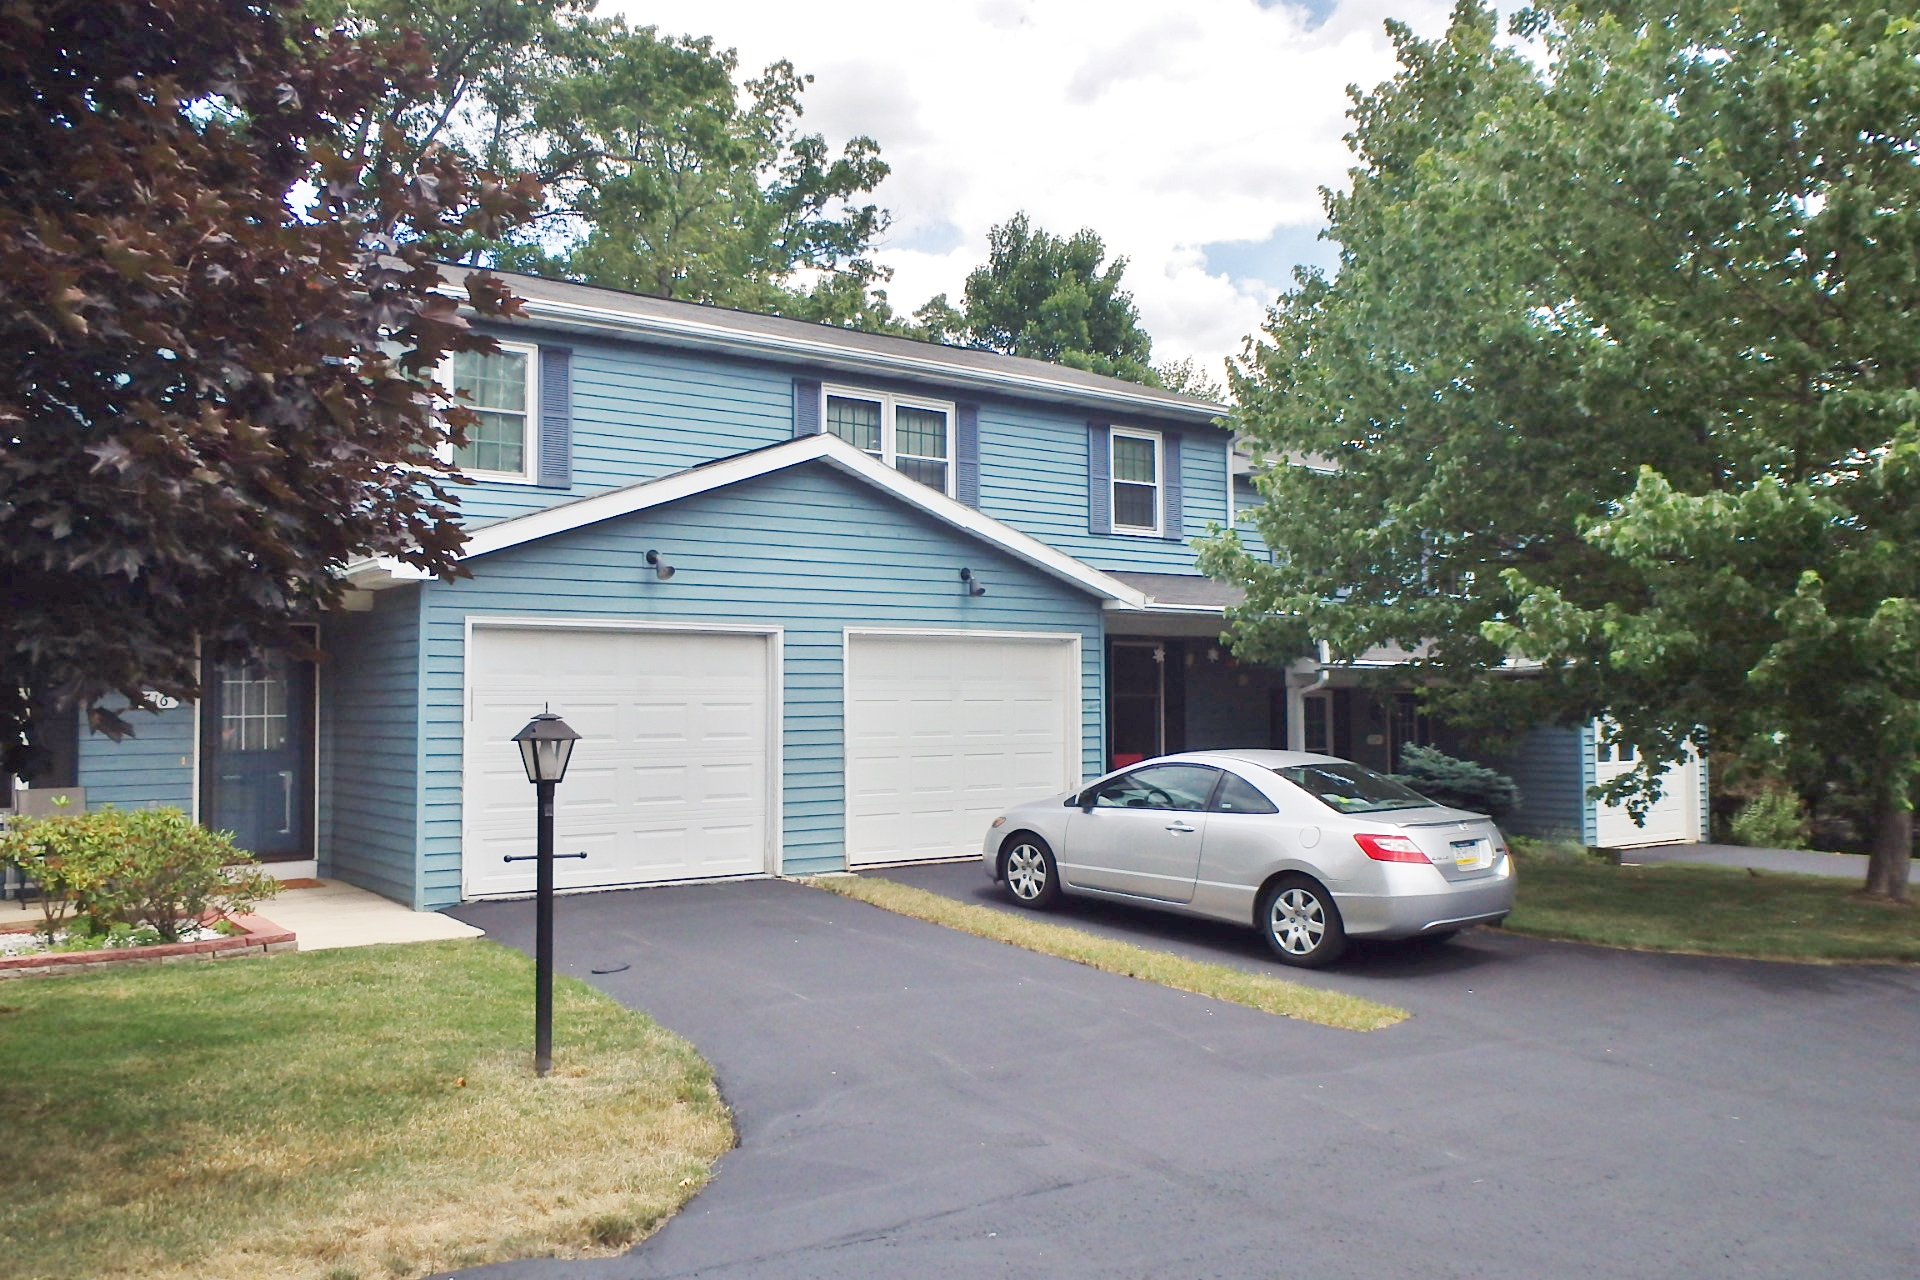 Photo of the 2-bedroom 'Galen Grove Townhouse' for rent at 720 Galen Drive in State College, PA.